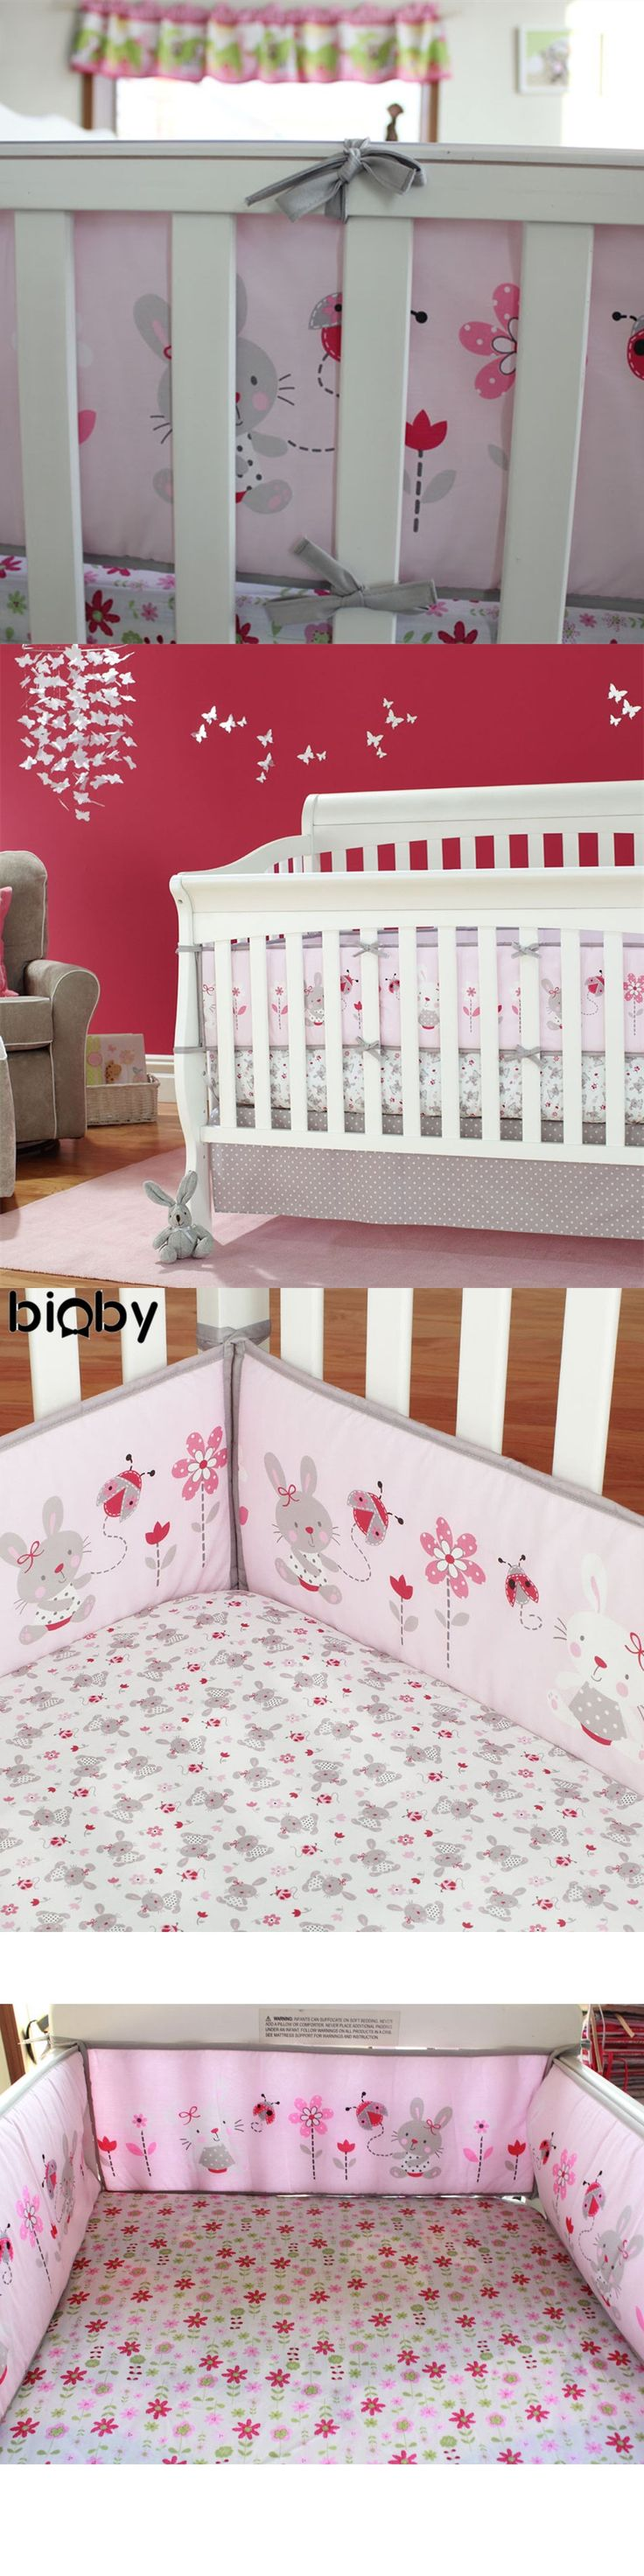 4Pcs/Set Rabbit Baby Infant Cot Crib Bumper Cotton Soft Safety Protector Toddler Nursery Cushion Baby Protect Bedding Set